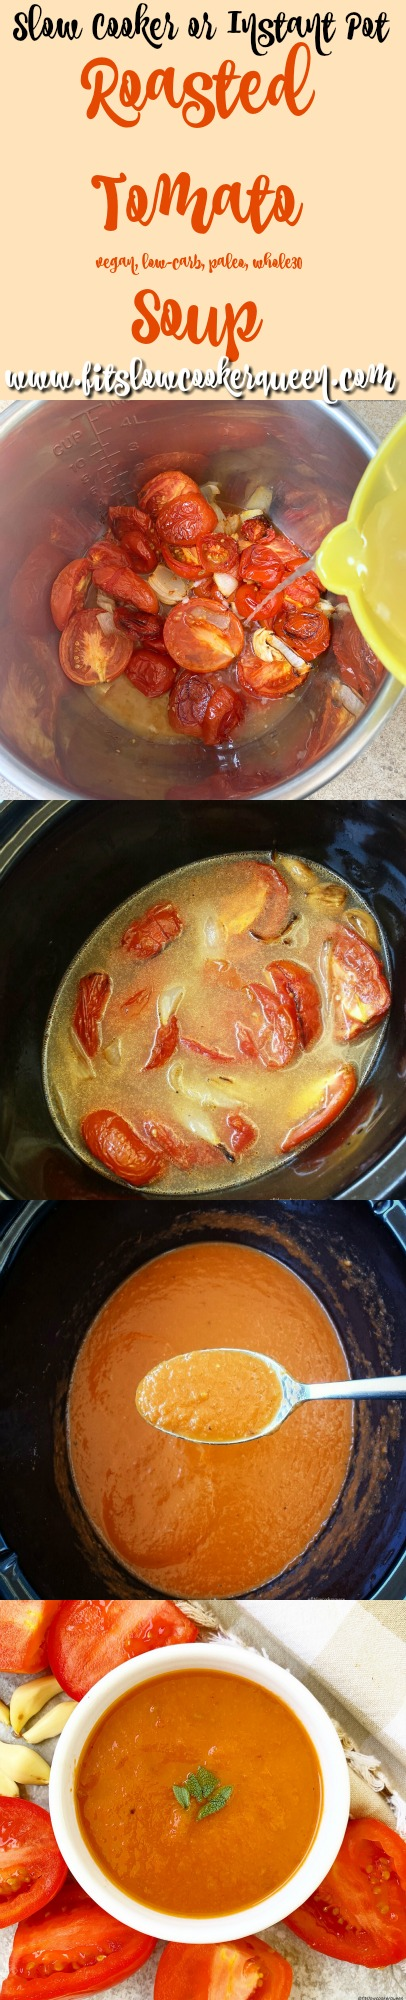 another Pinterest pin for Slow Cooker_Instant Pot Roasted Tomato Soup (Paleo_Whole30)